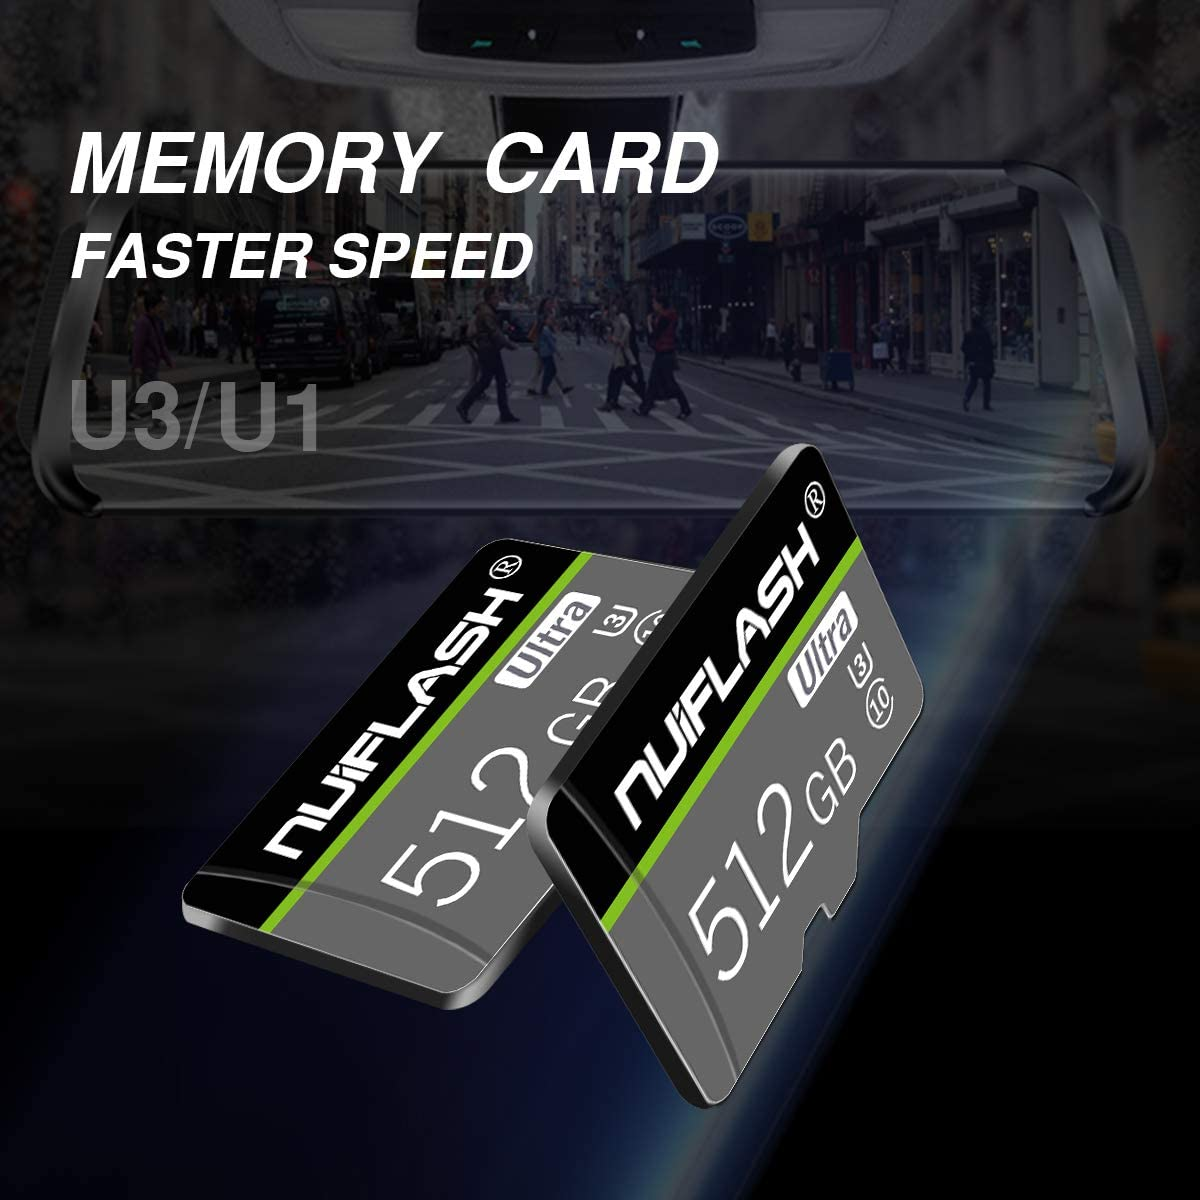 Micro SD Card 512GB Memory Card,TF Card 512GB Class 10 Flash SD Memory Card with Adapter for Mobile Phones,Tablets,Cameras (512GB)